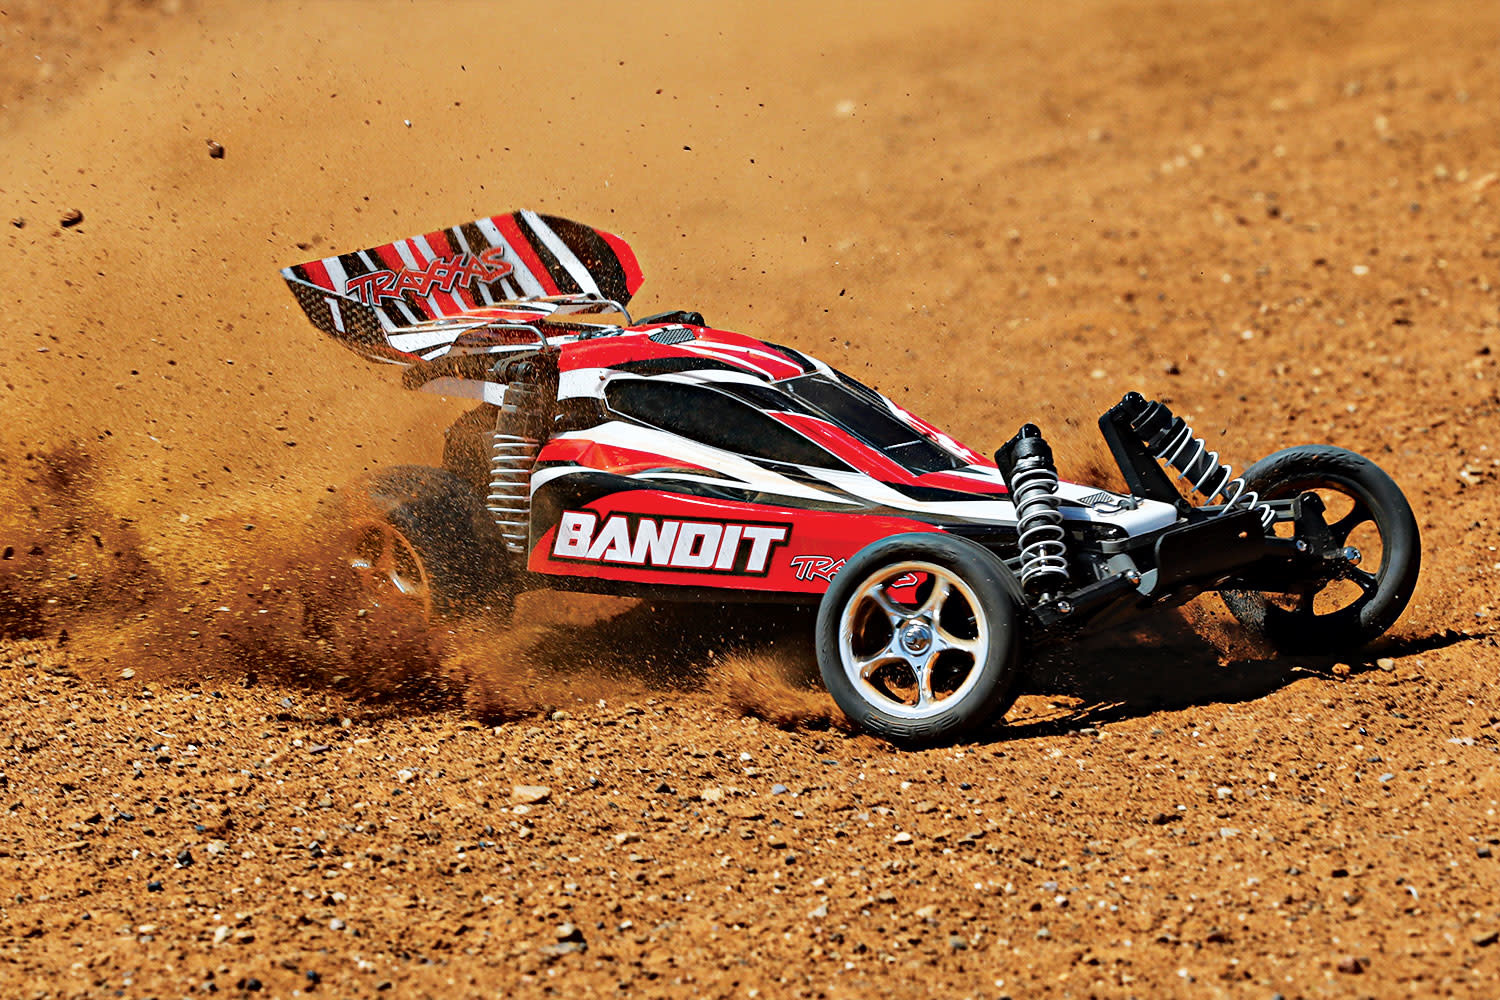 Traxxas Bandit XL-5 TQ (incl. battery/charger), Red, TRX24054-1R-9